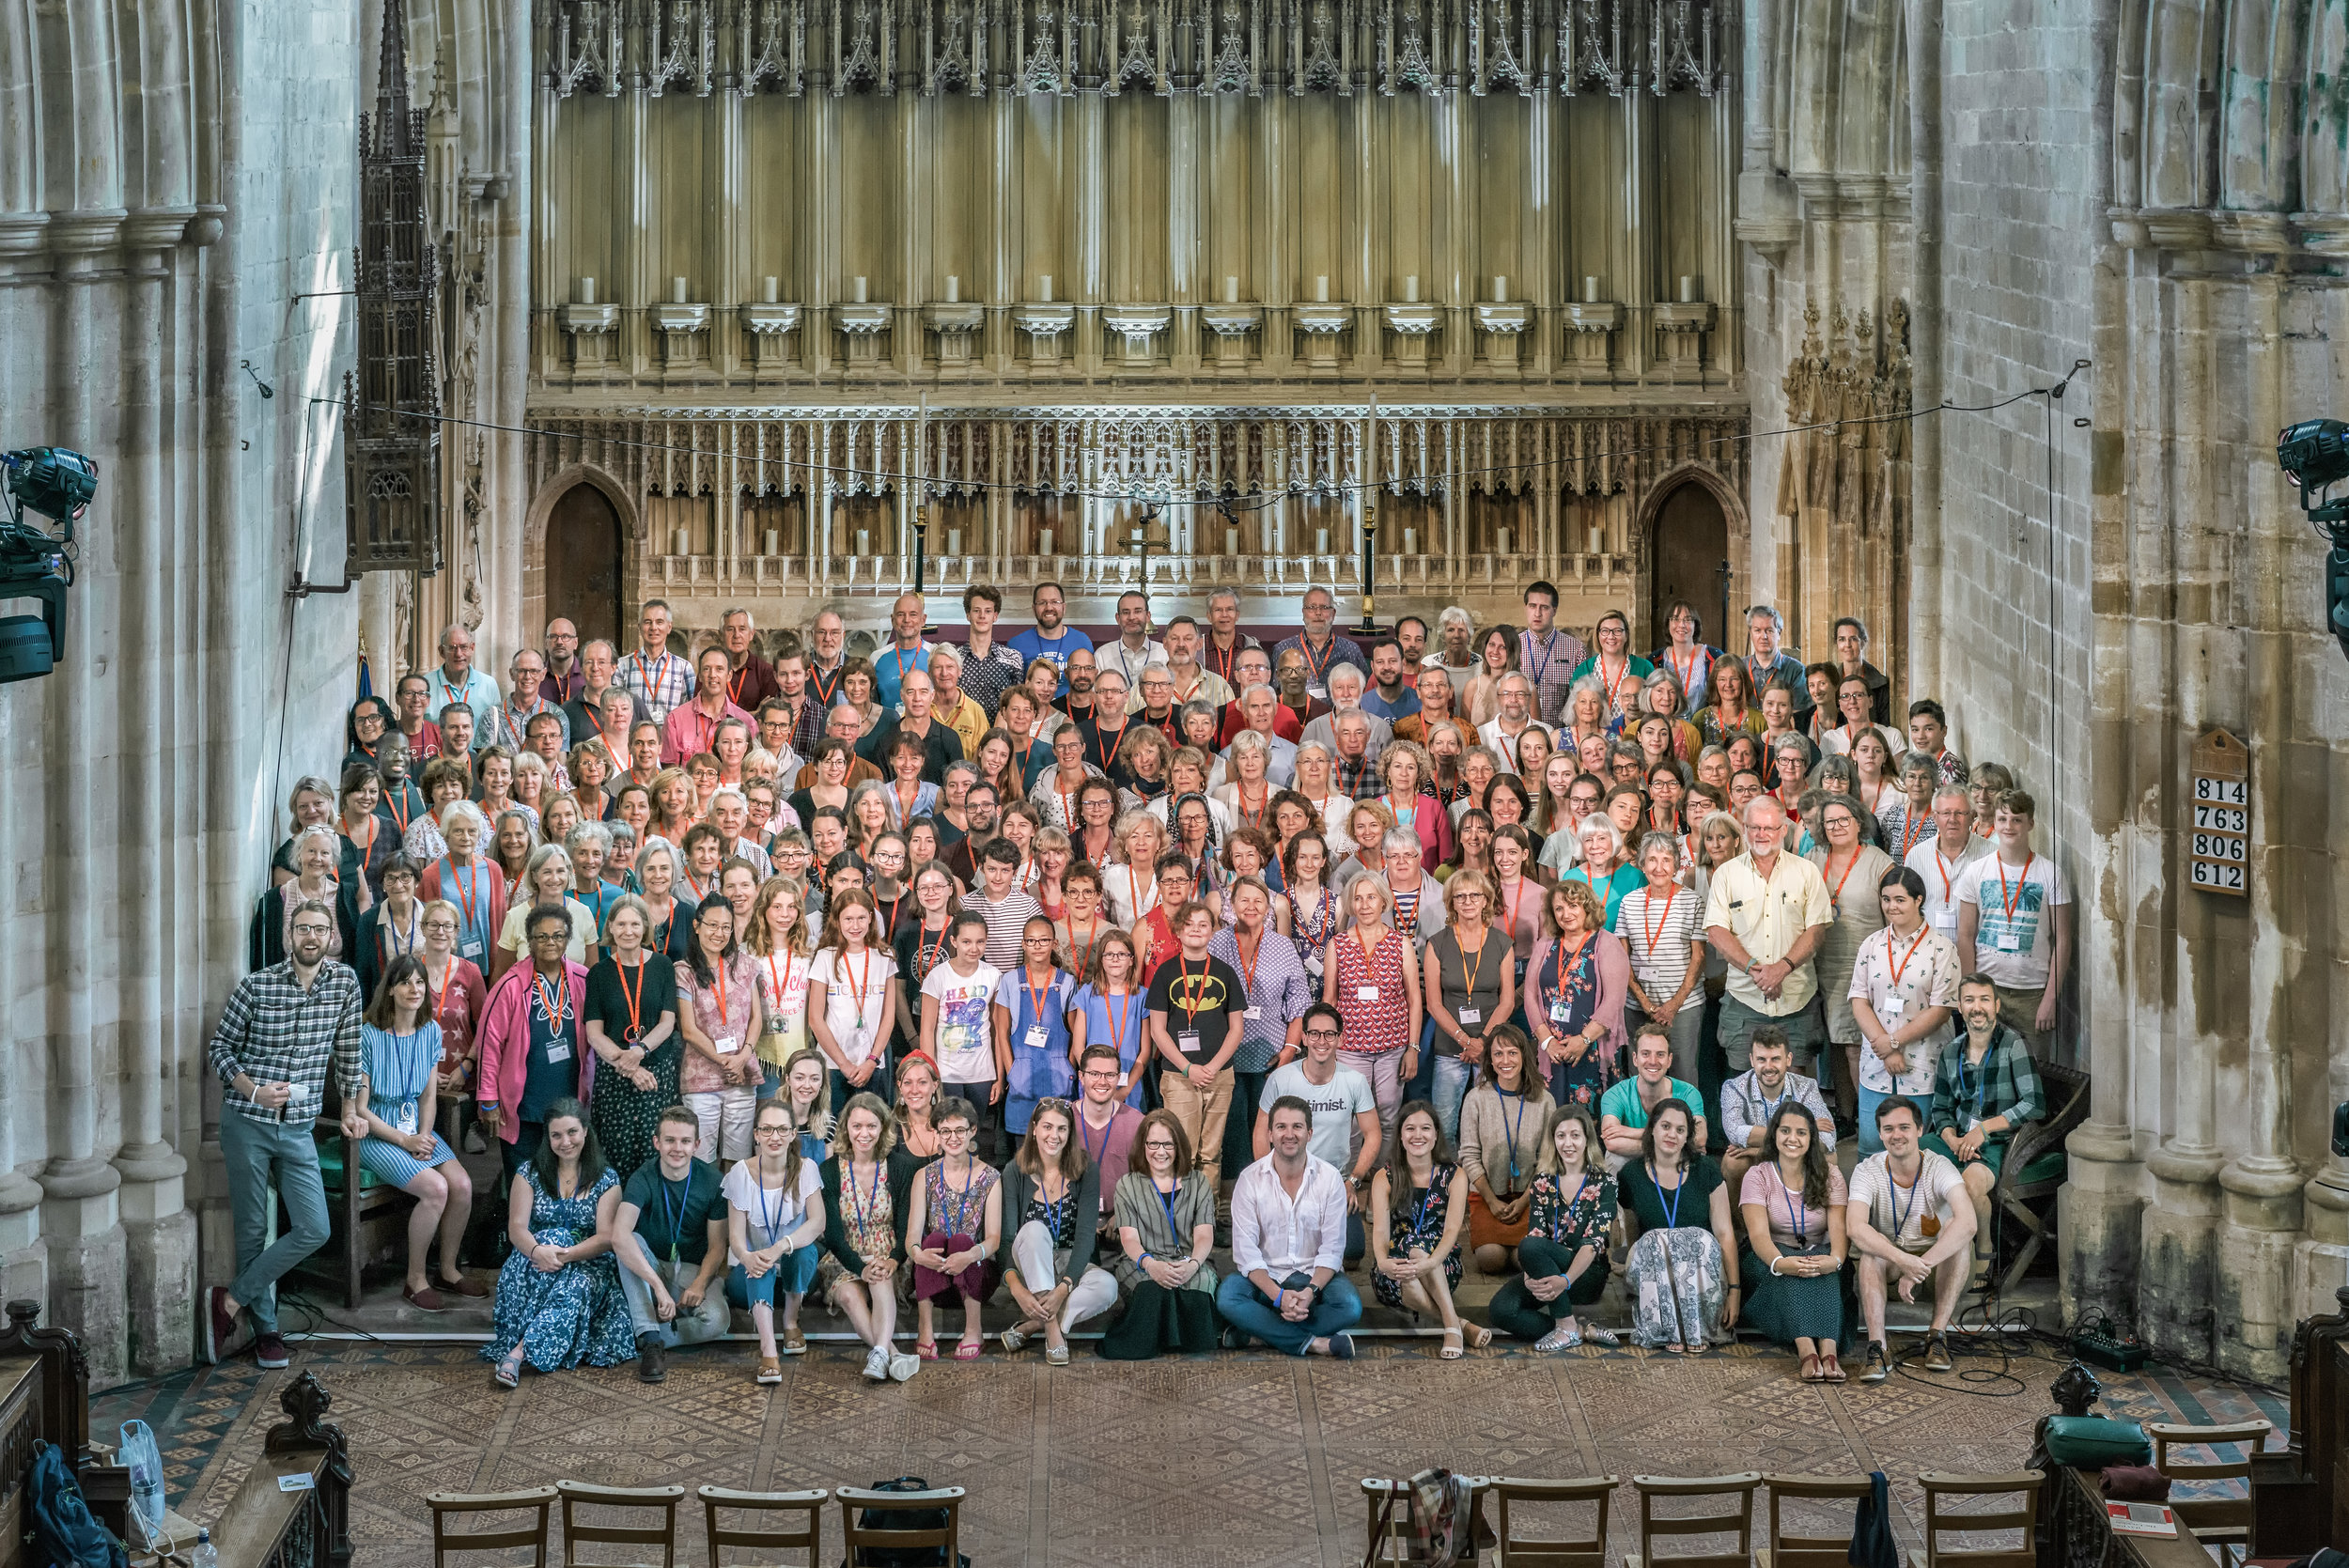 The 2019 Summer School participants and staff